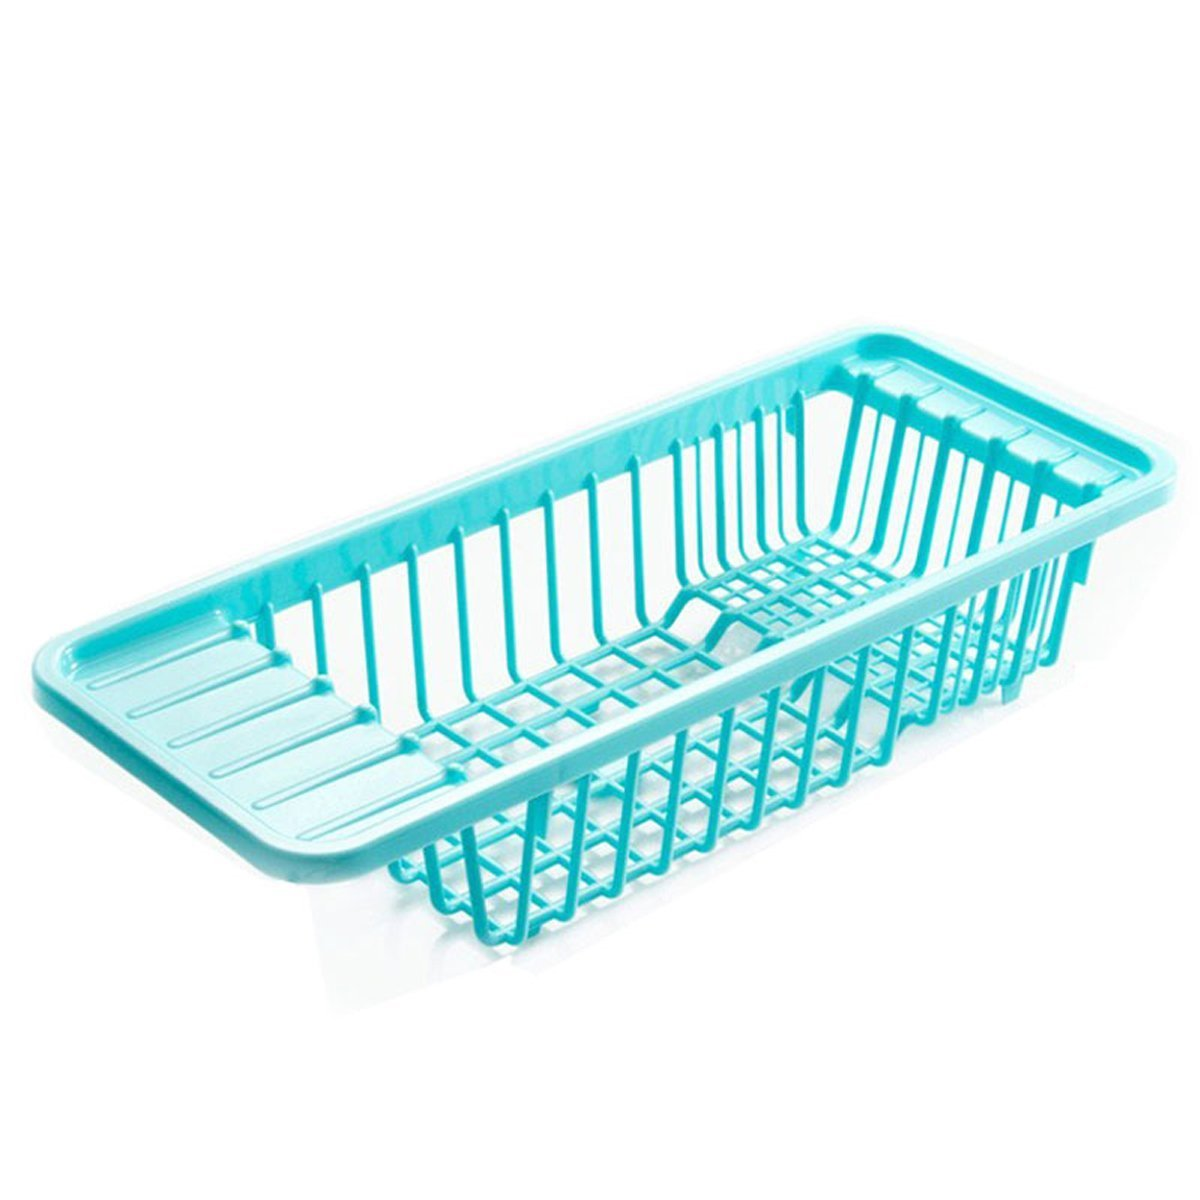 Dish Drying Rack Dish Drainer Over the Sink Large (Blue)